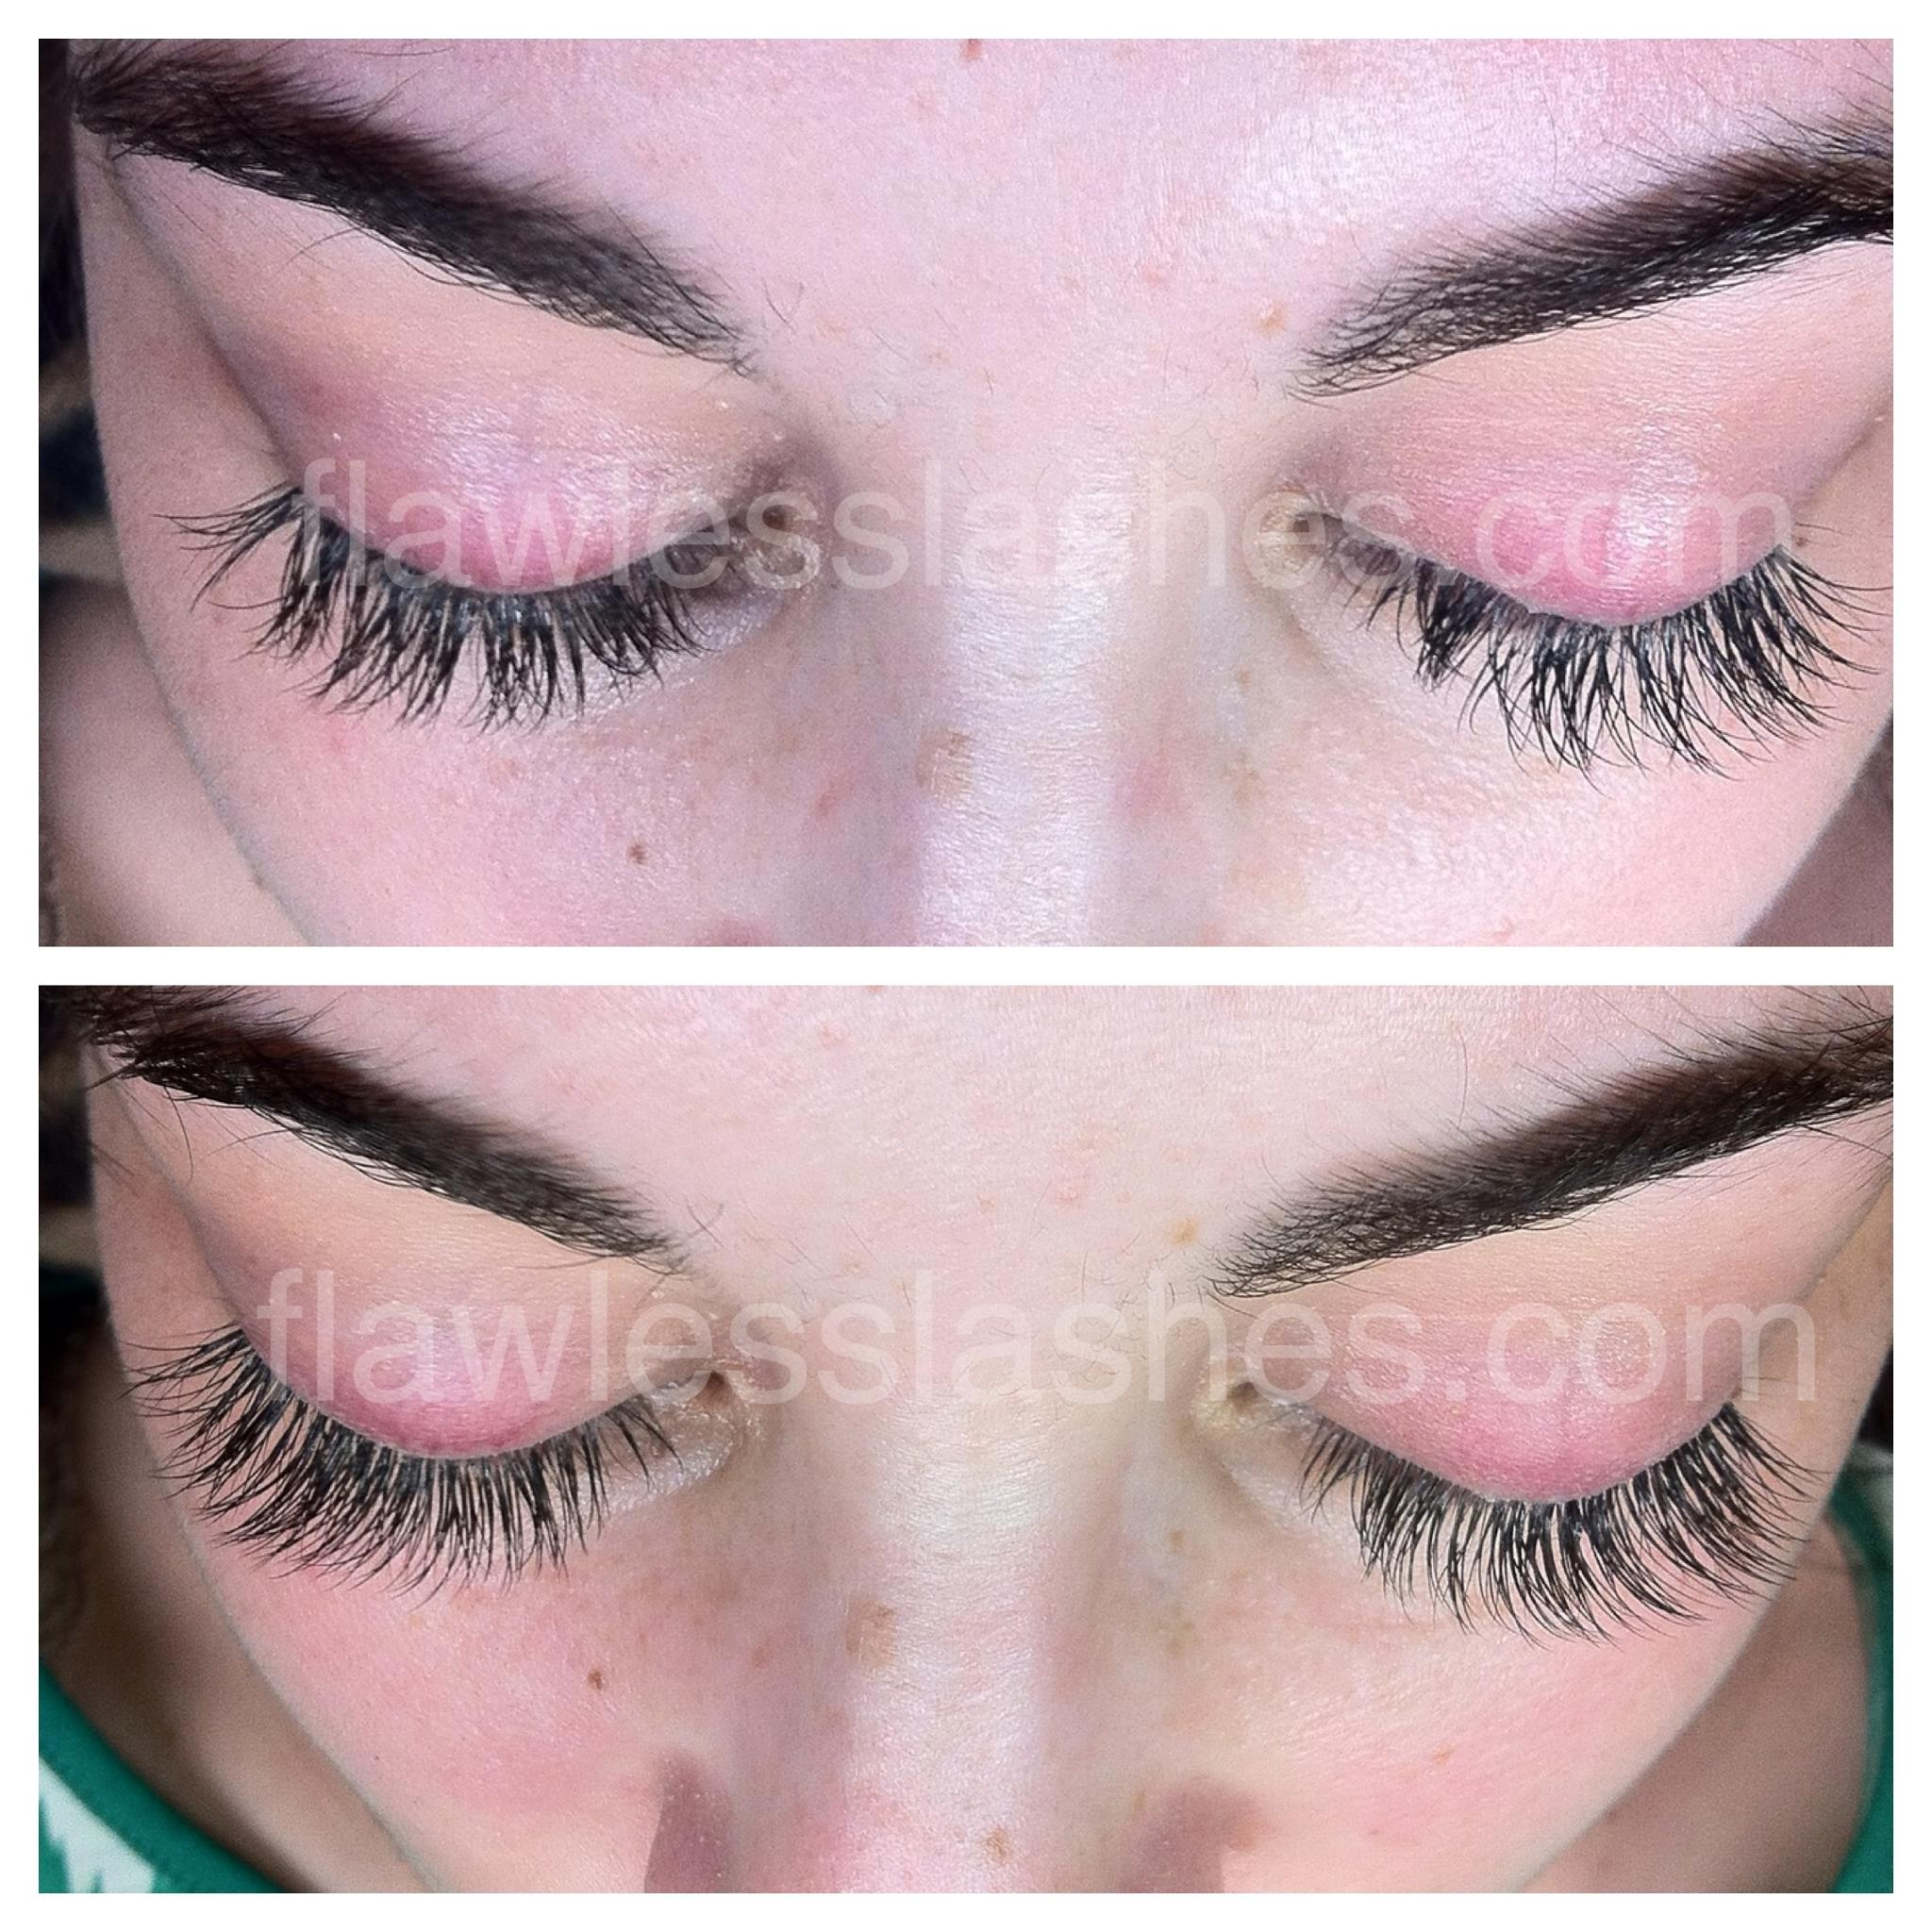 Eyelash extensions after 2 weeks (top) and after touch up (bottom).